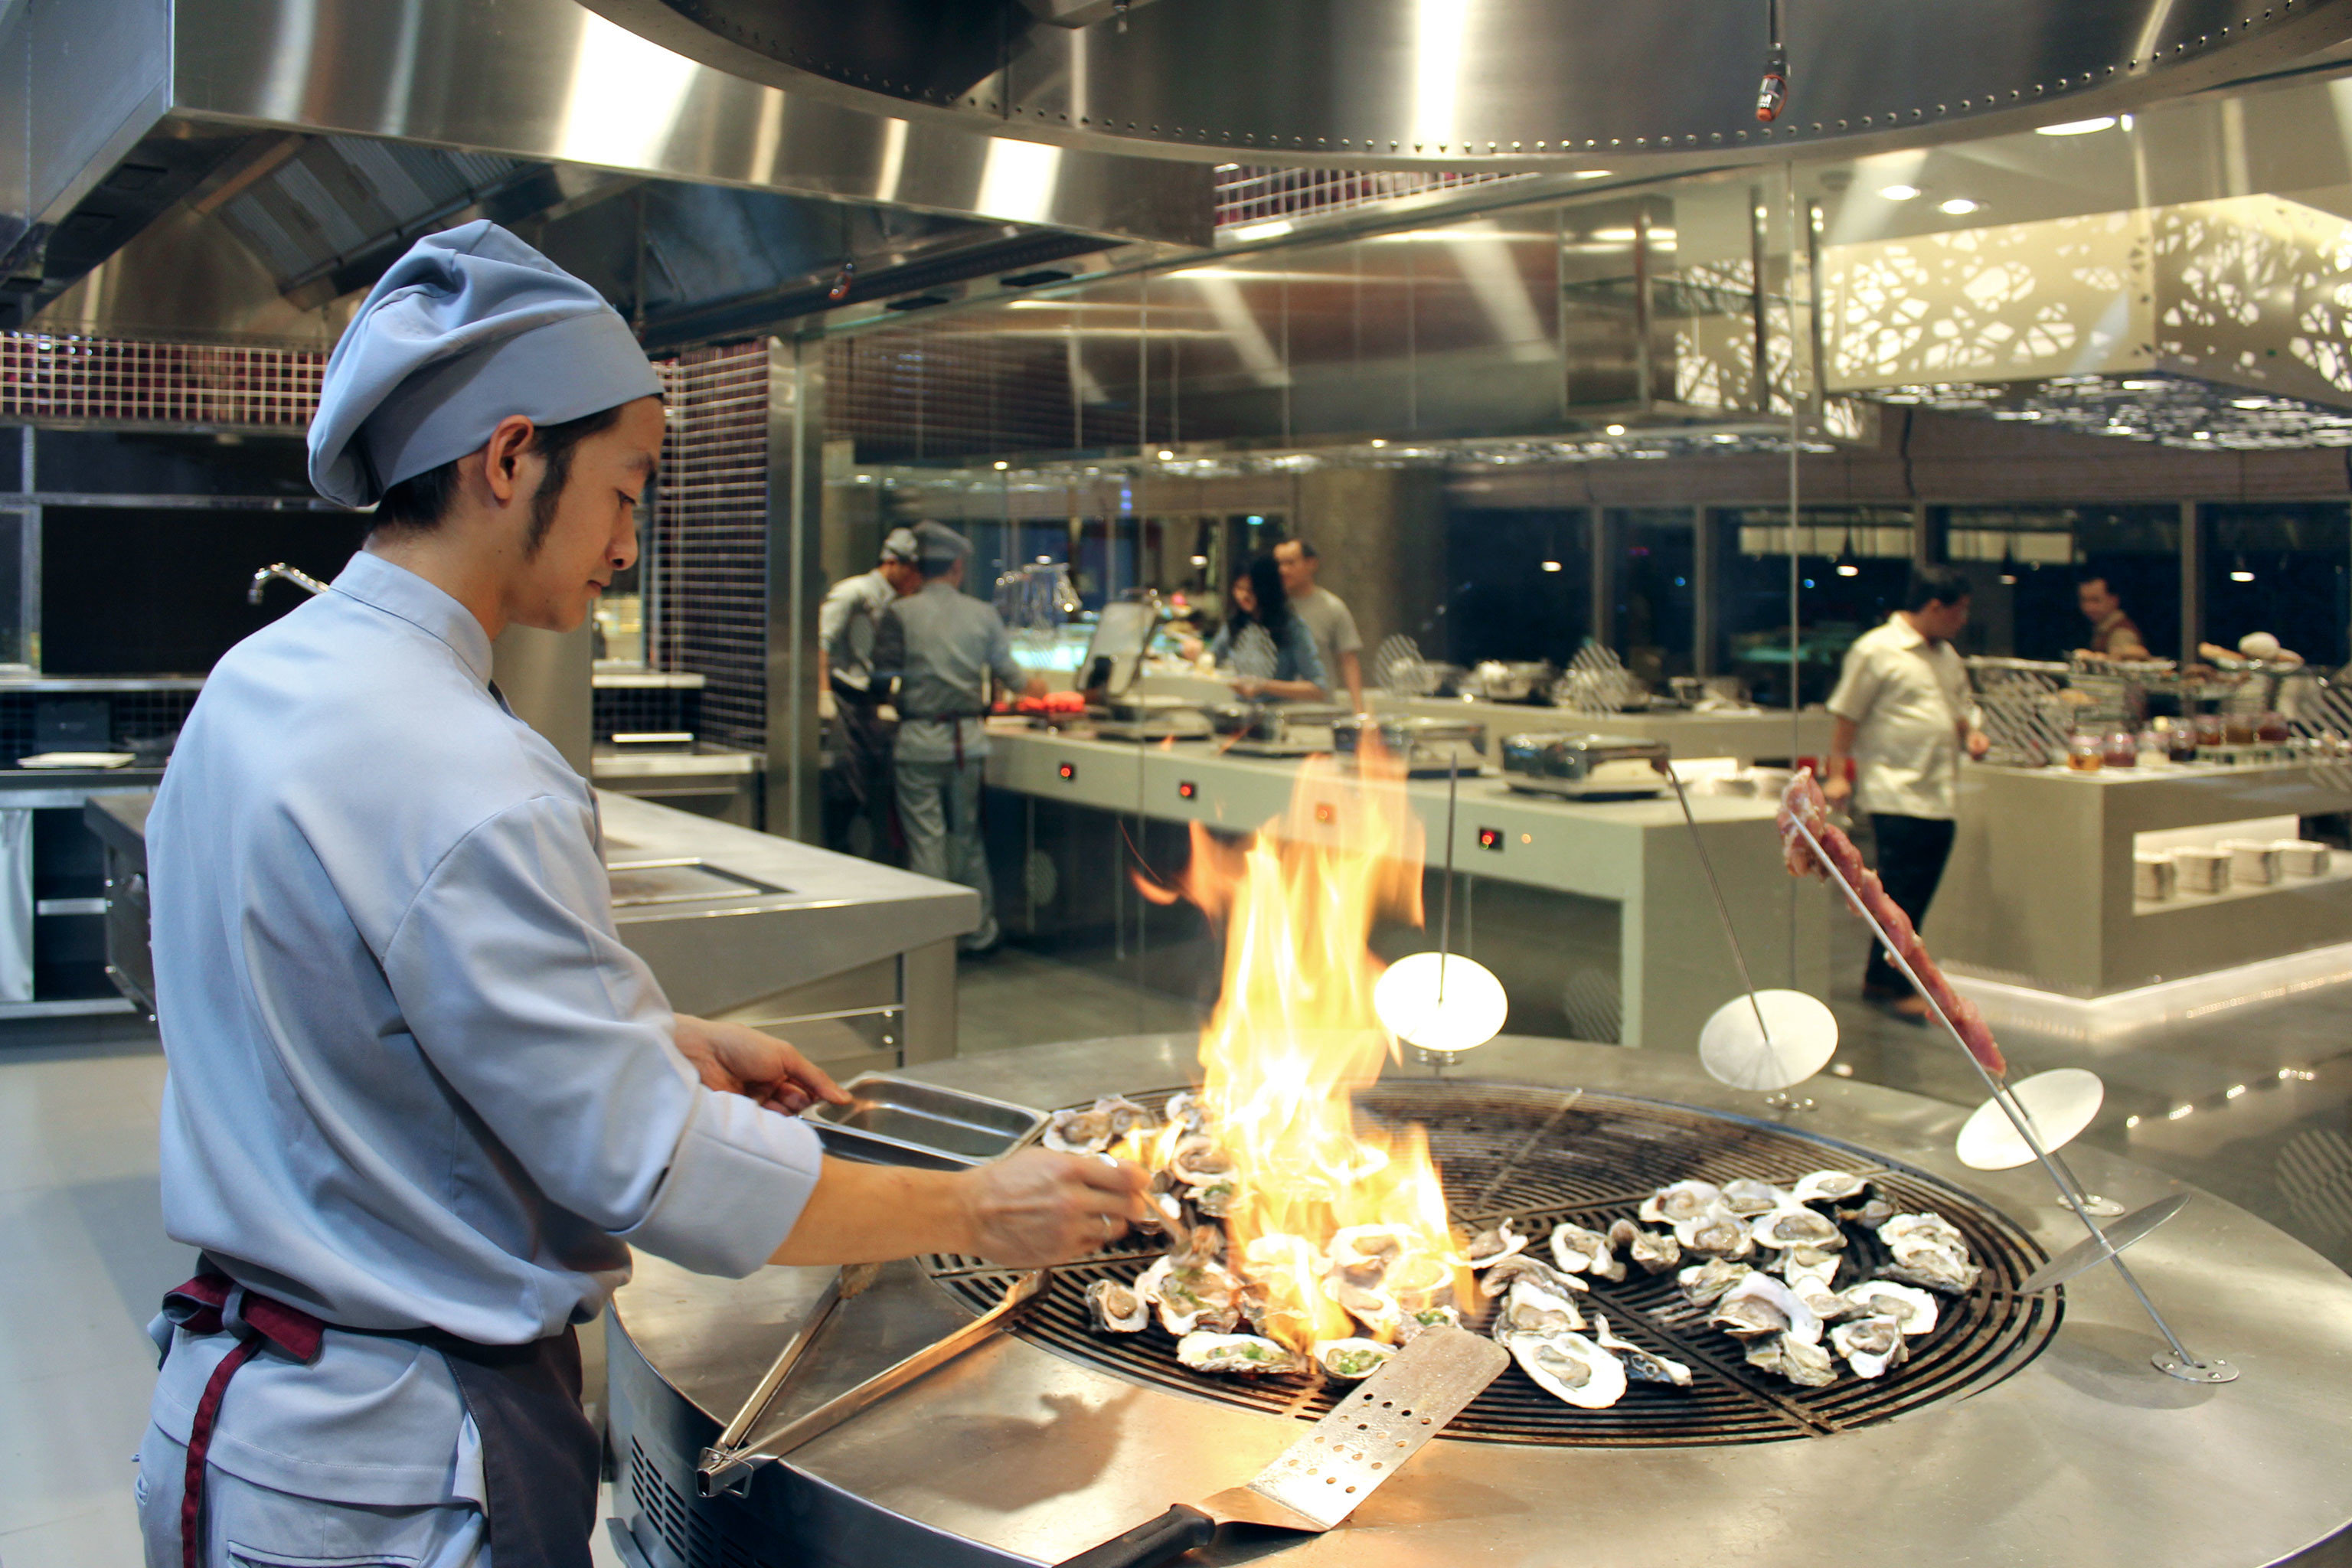 Dining Eat Entertainment Resort Kitchen preparing manufacturing cooking working restaurant machine factory grill